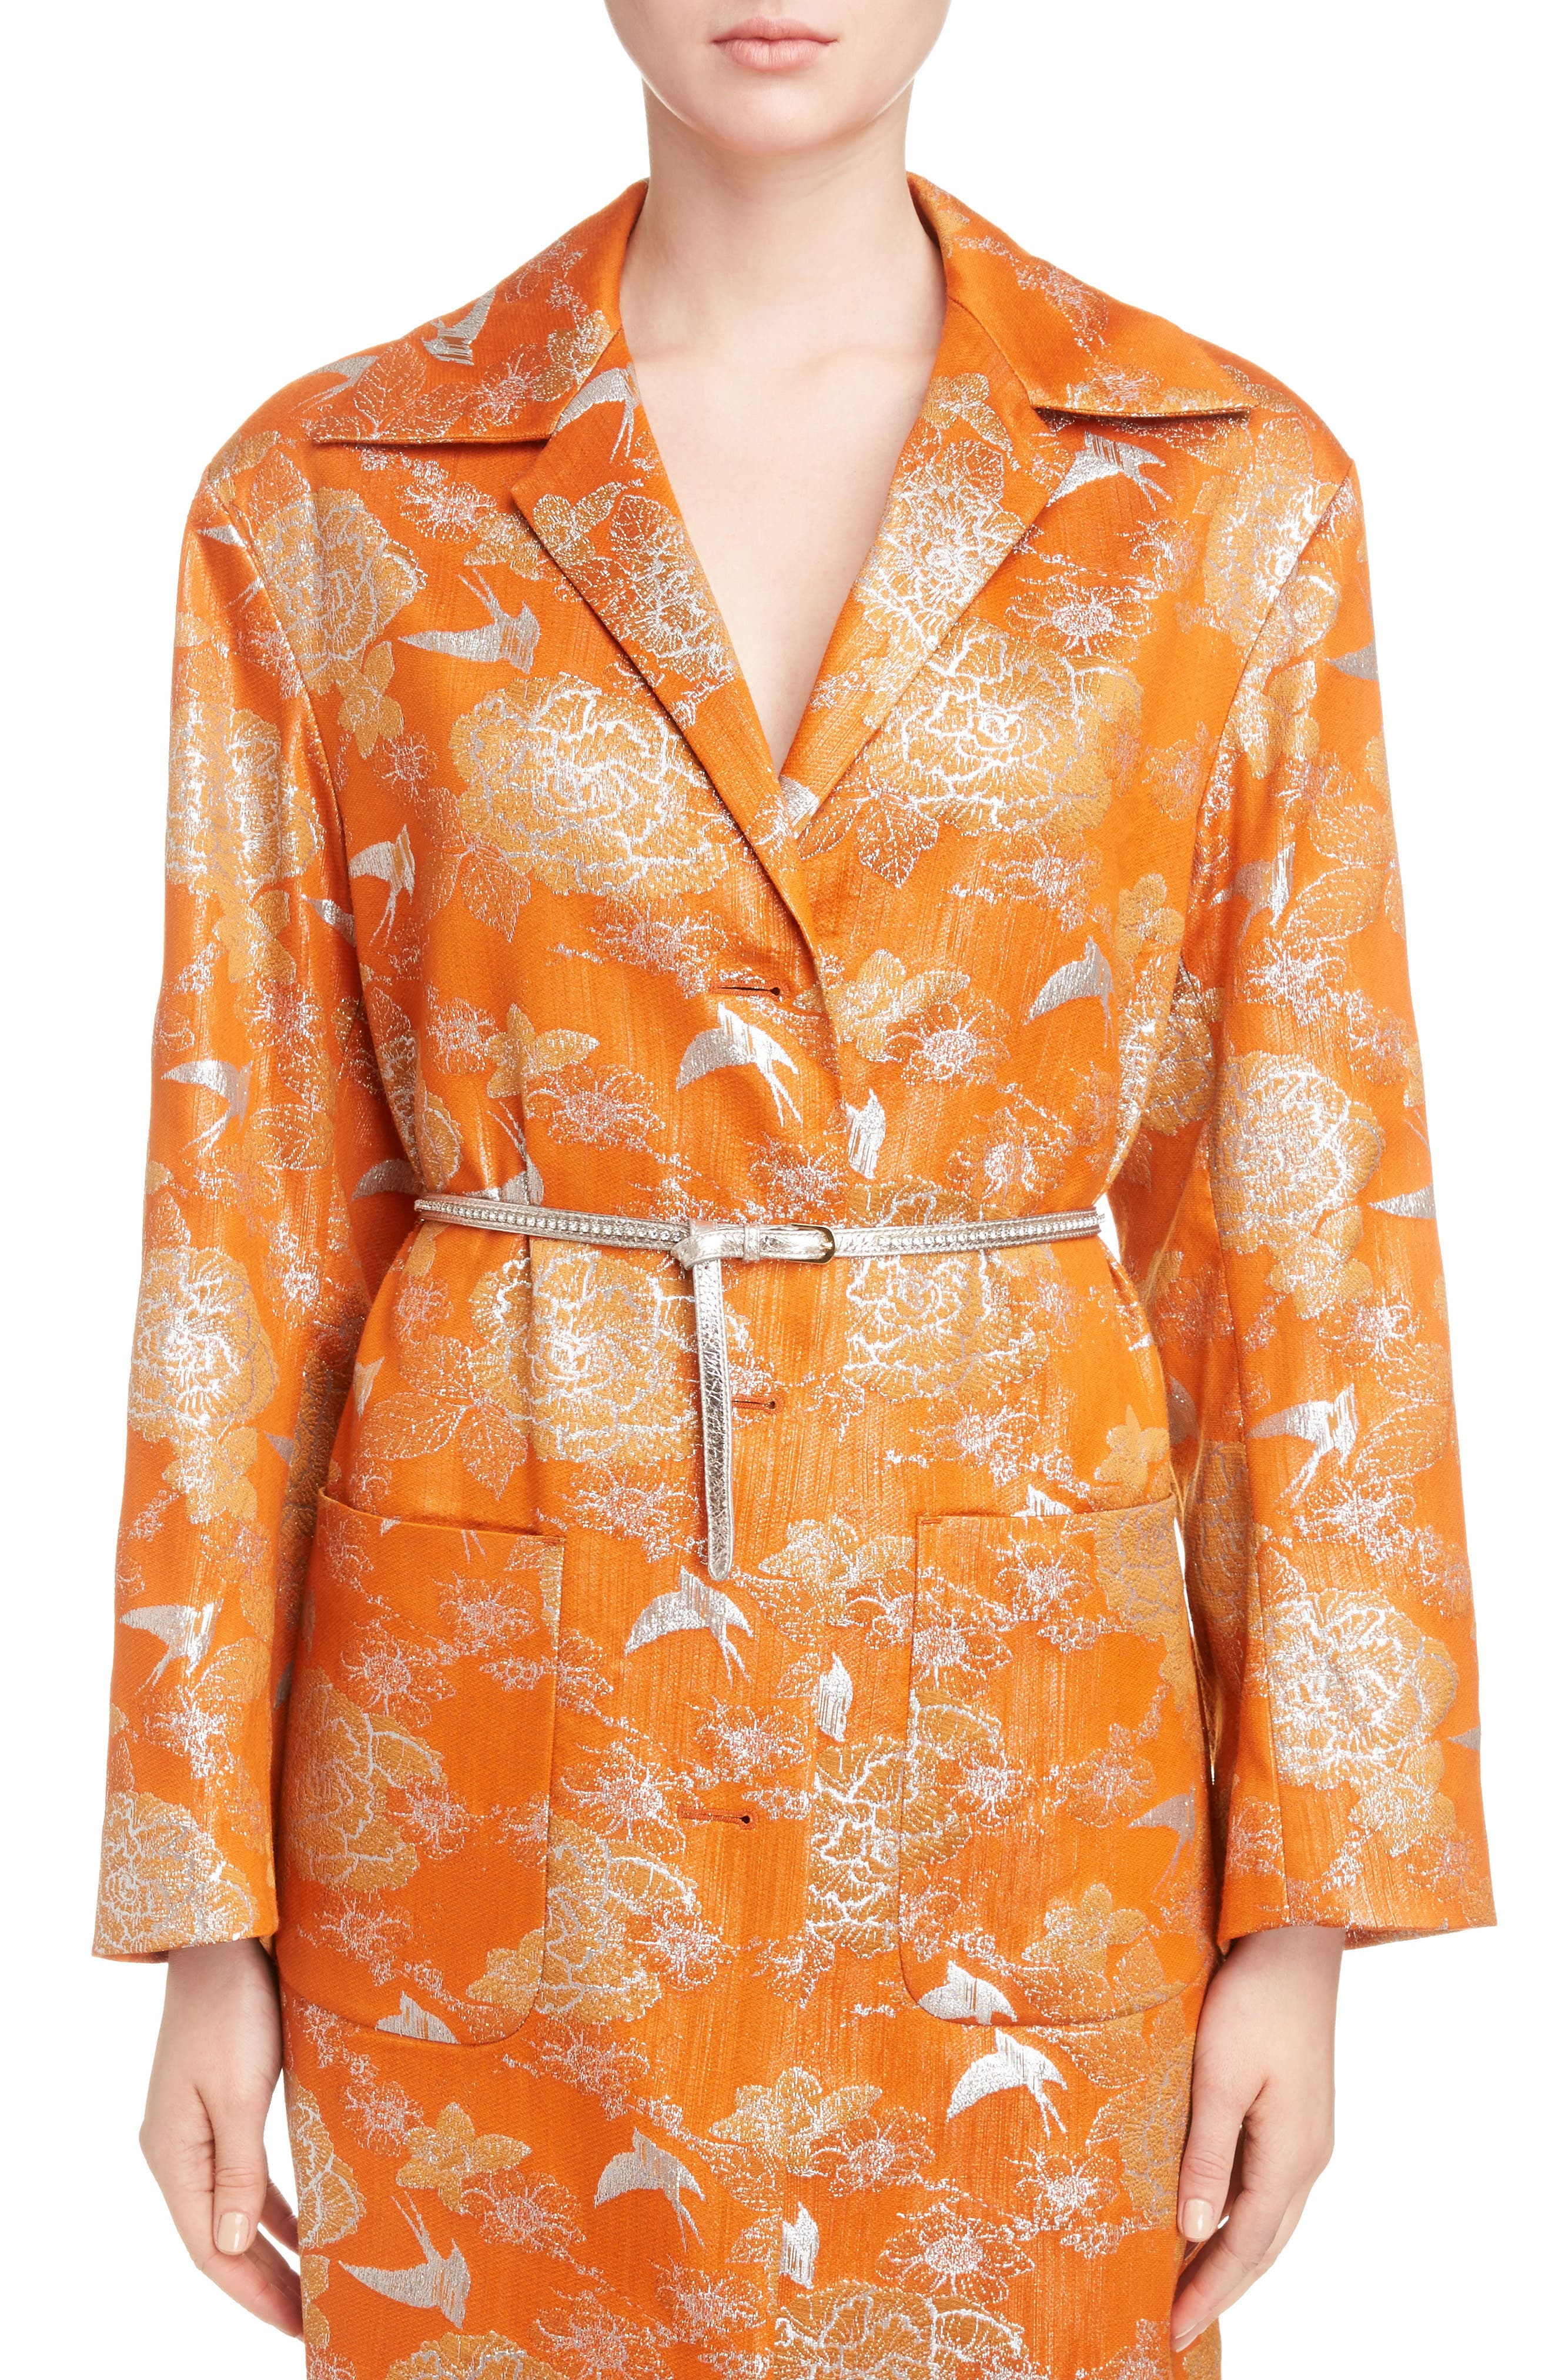 Silver Bird Jacquard Coat,                             Alternate thumbnail 6, color,                             800